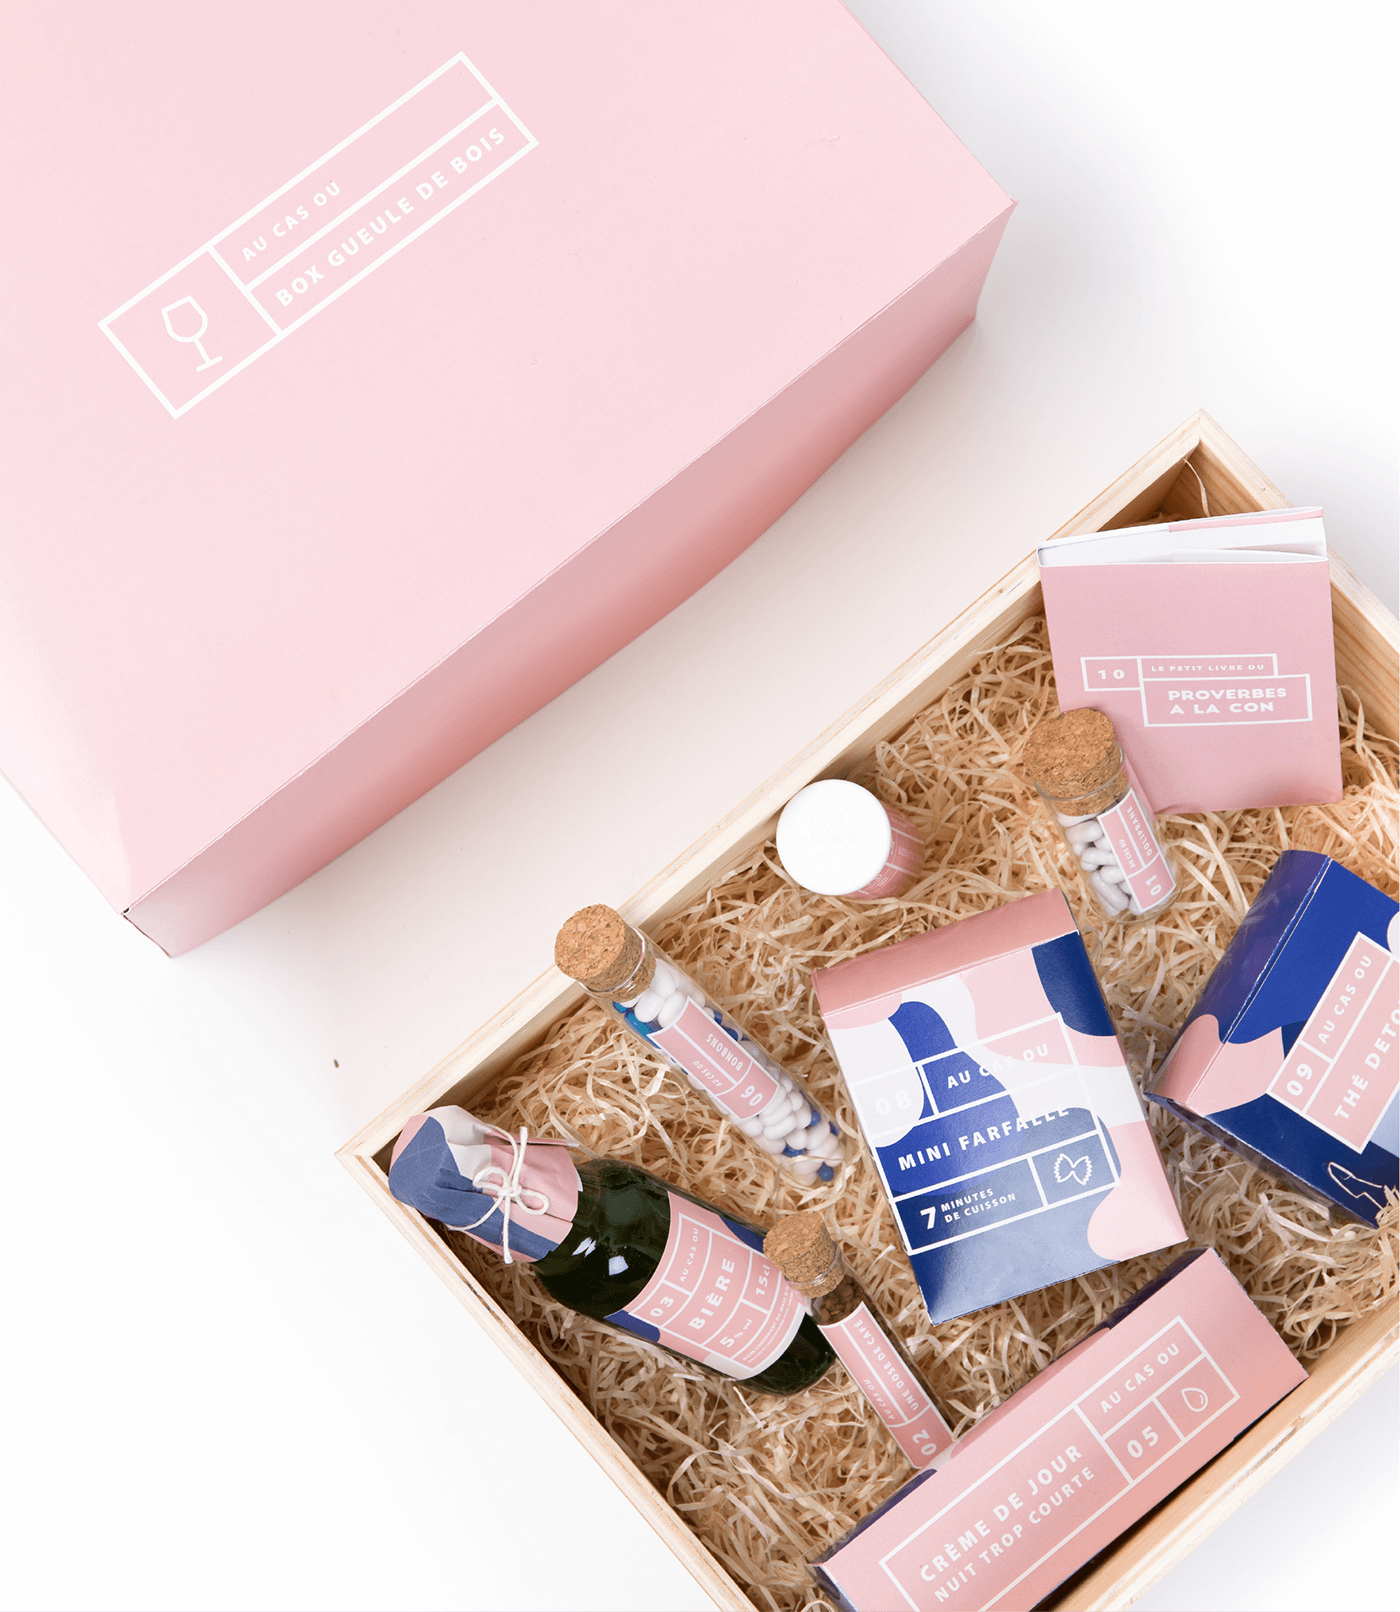 Personalize your packaging & make it 'Gram worthy